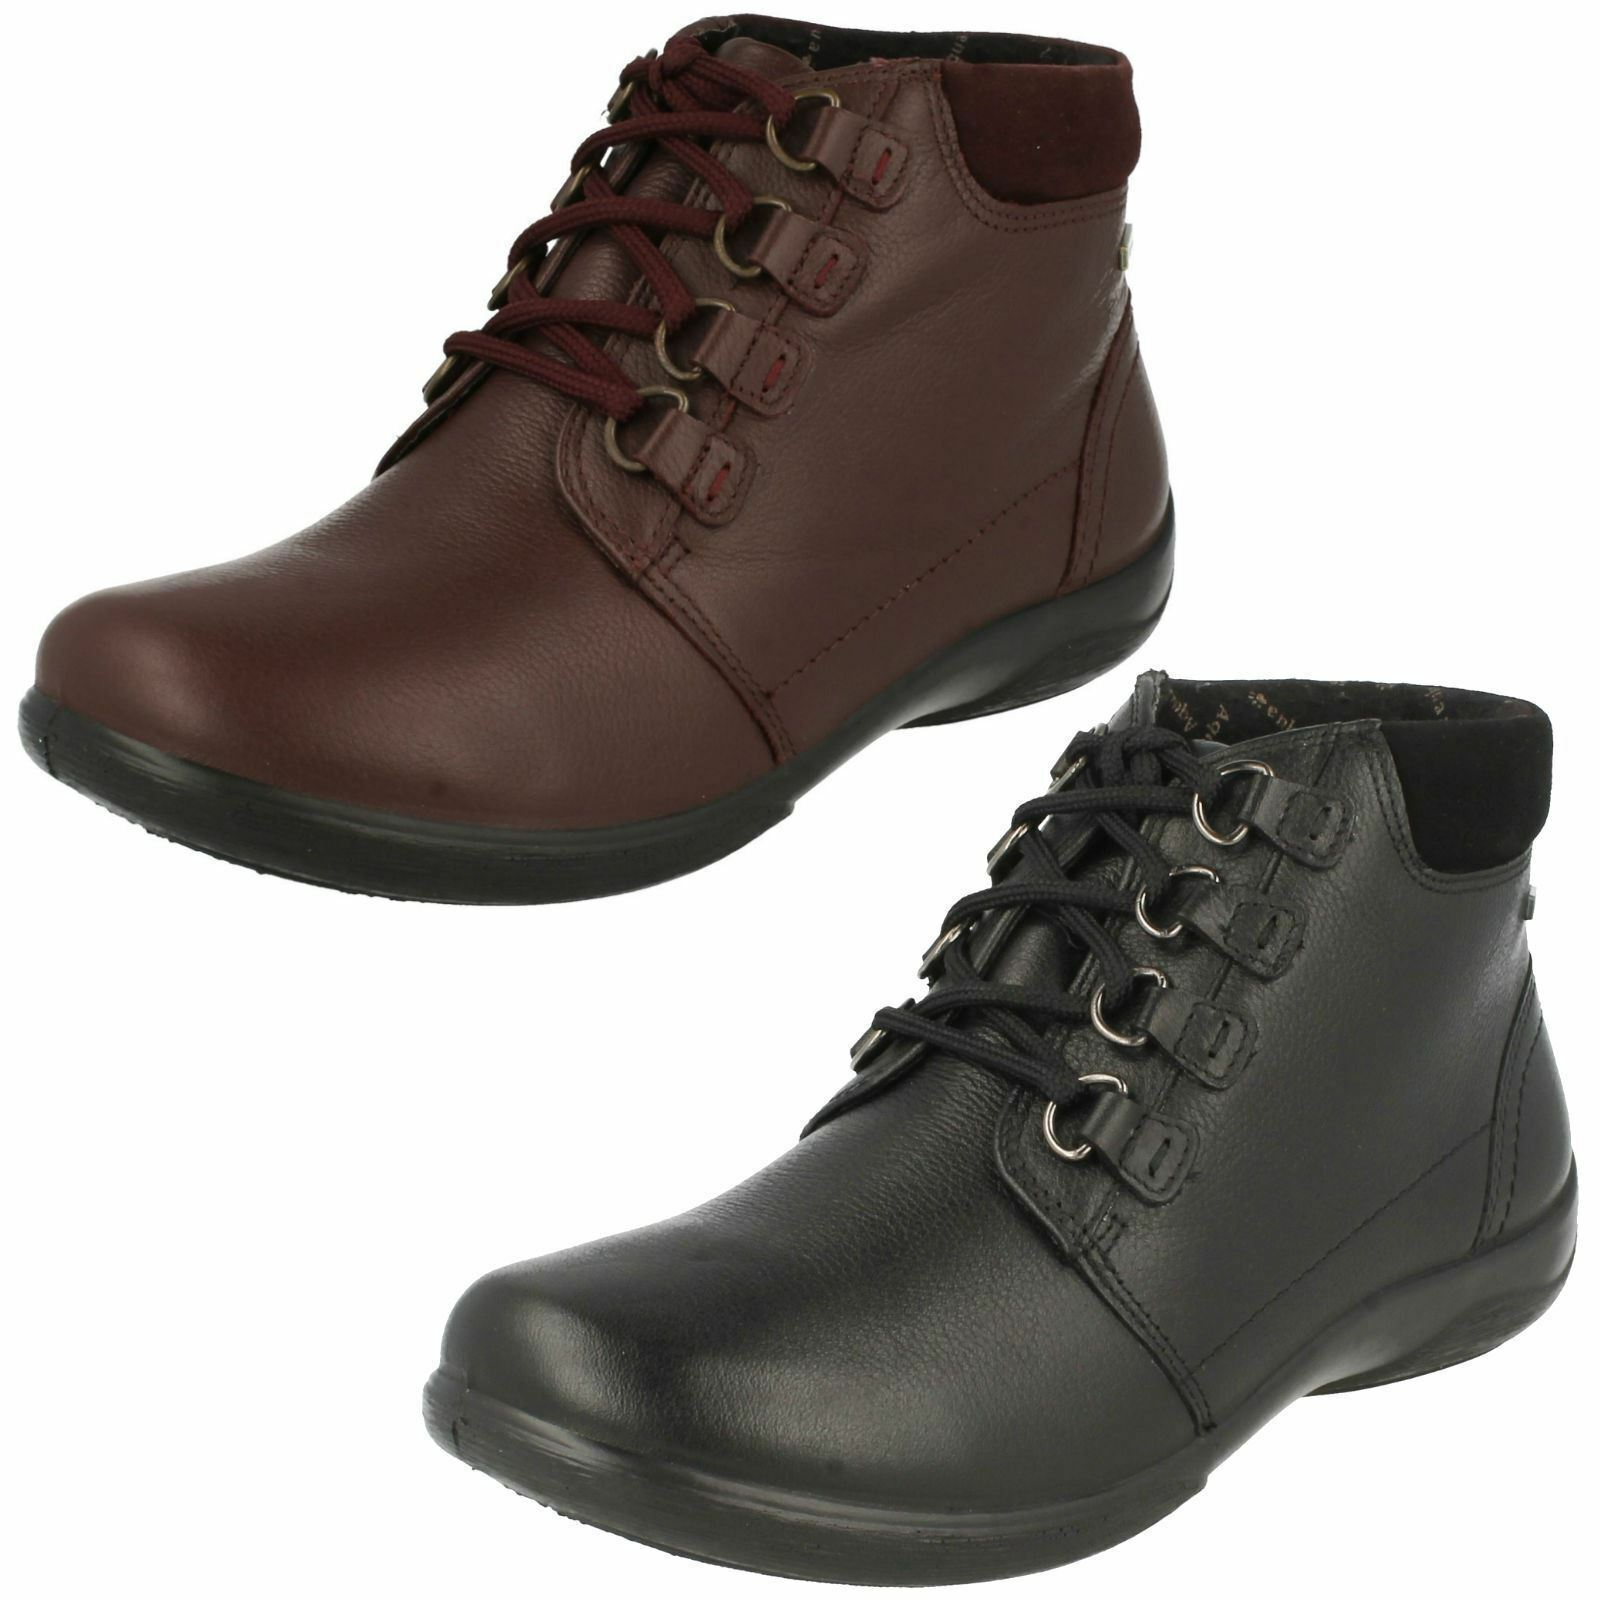 PADDERS LADIES LACE UP ANKLE Stiefel JOURNEY schwarz AND PLUM LEATHER